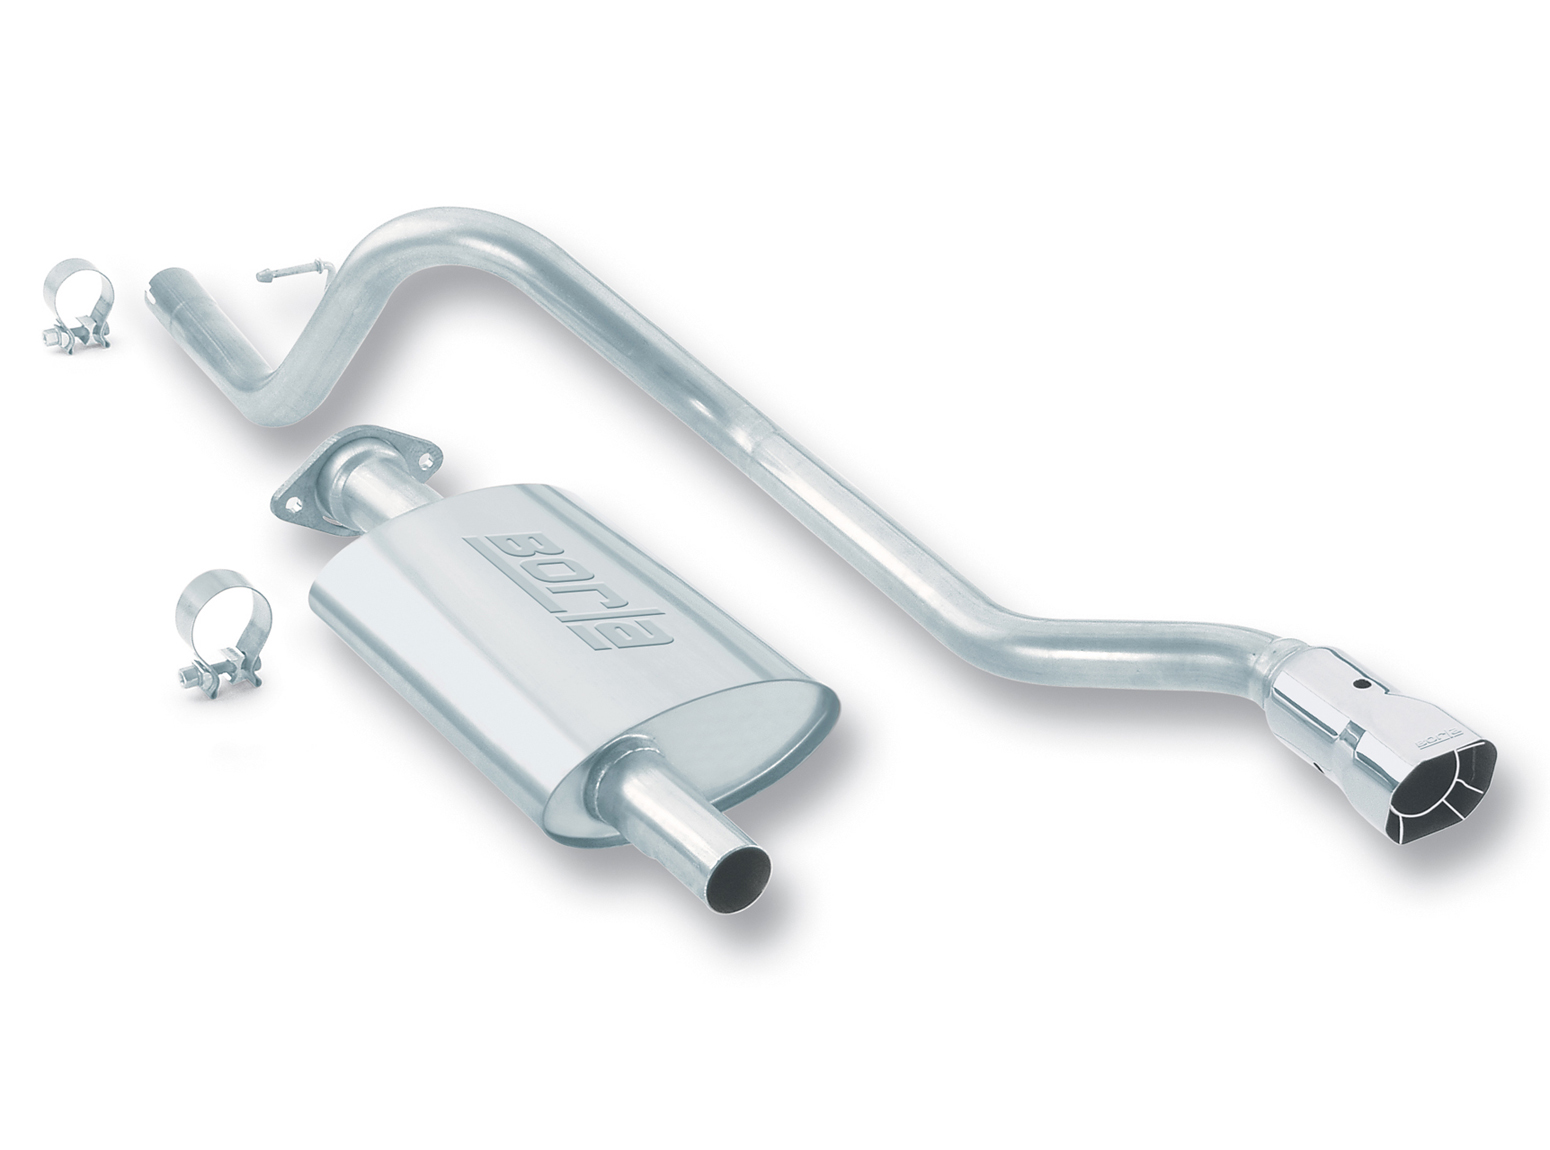 "Jeep Cherokee 4.0l 6cyl 2000-2001 Borla 2.25"", 2"" Cat-Back Exhaust System - Single Square Angle-Cut Intercooled Tips"